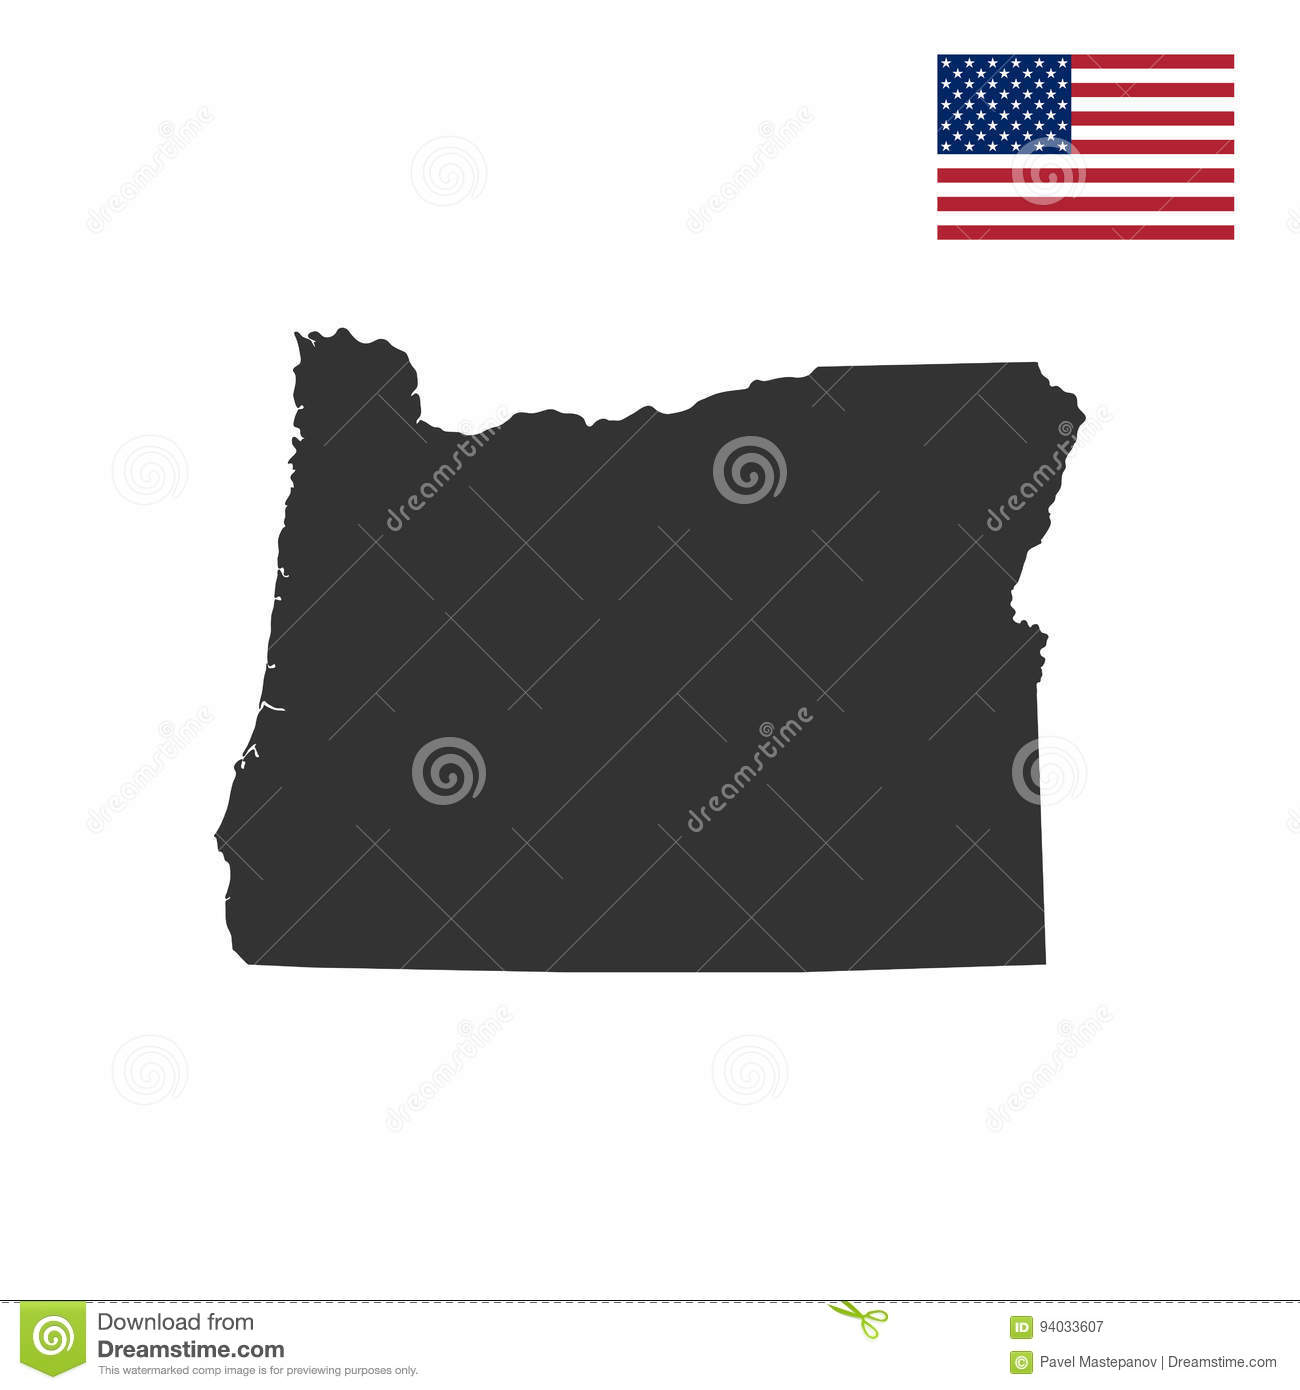 Map Of The U.S. State Of Oregon Stock Vector - Illustration of ... S In Oregon Map on